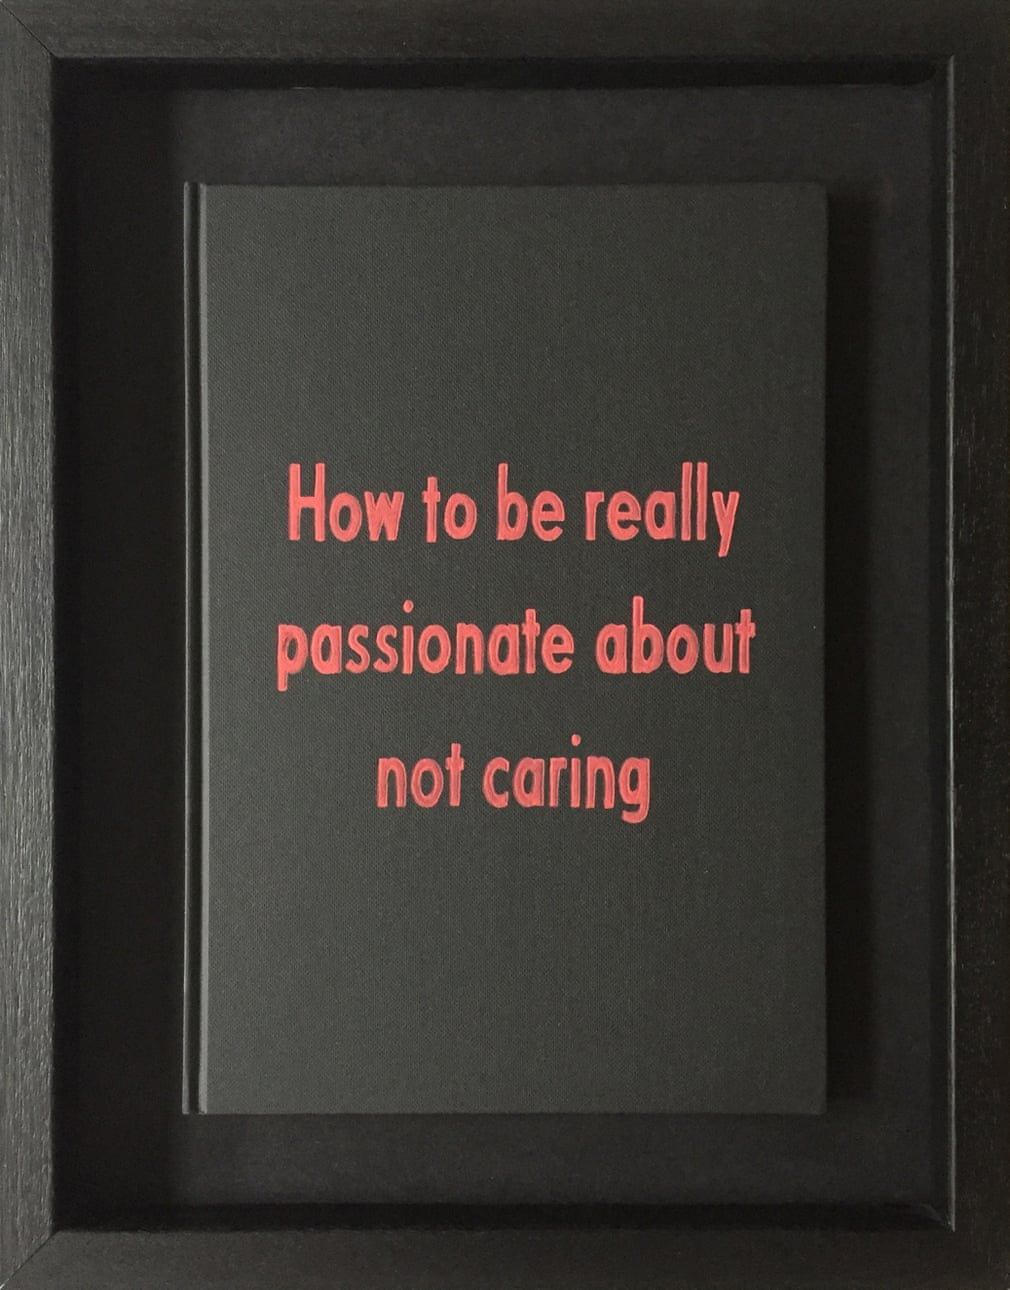 How to Be Really Passionate About Not Caring from Art Therapy by Johan Deckmann